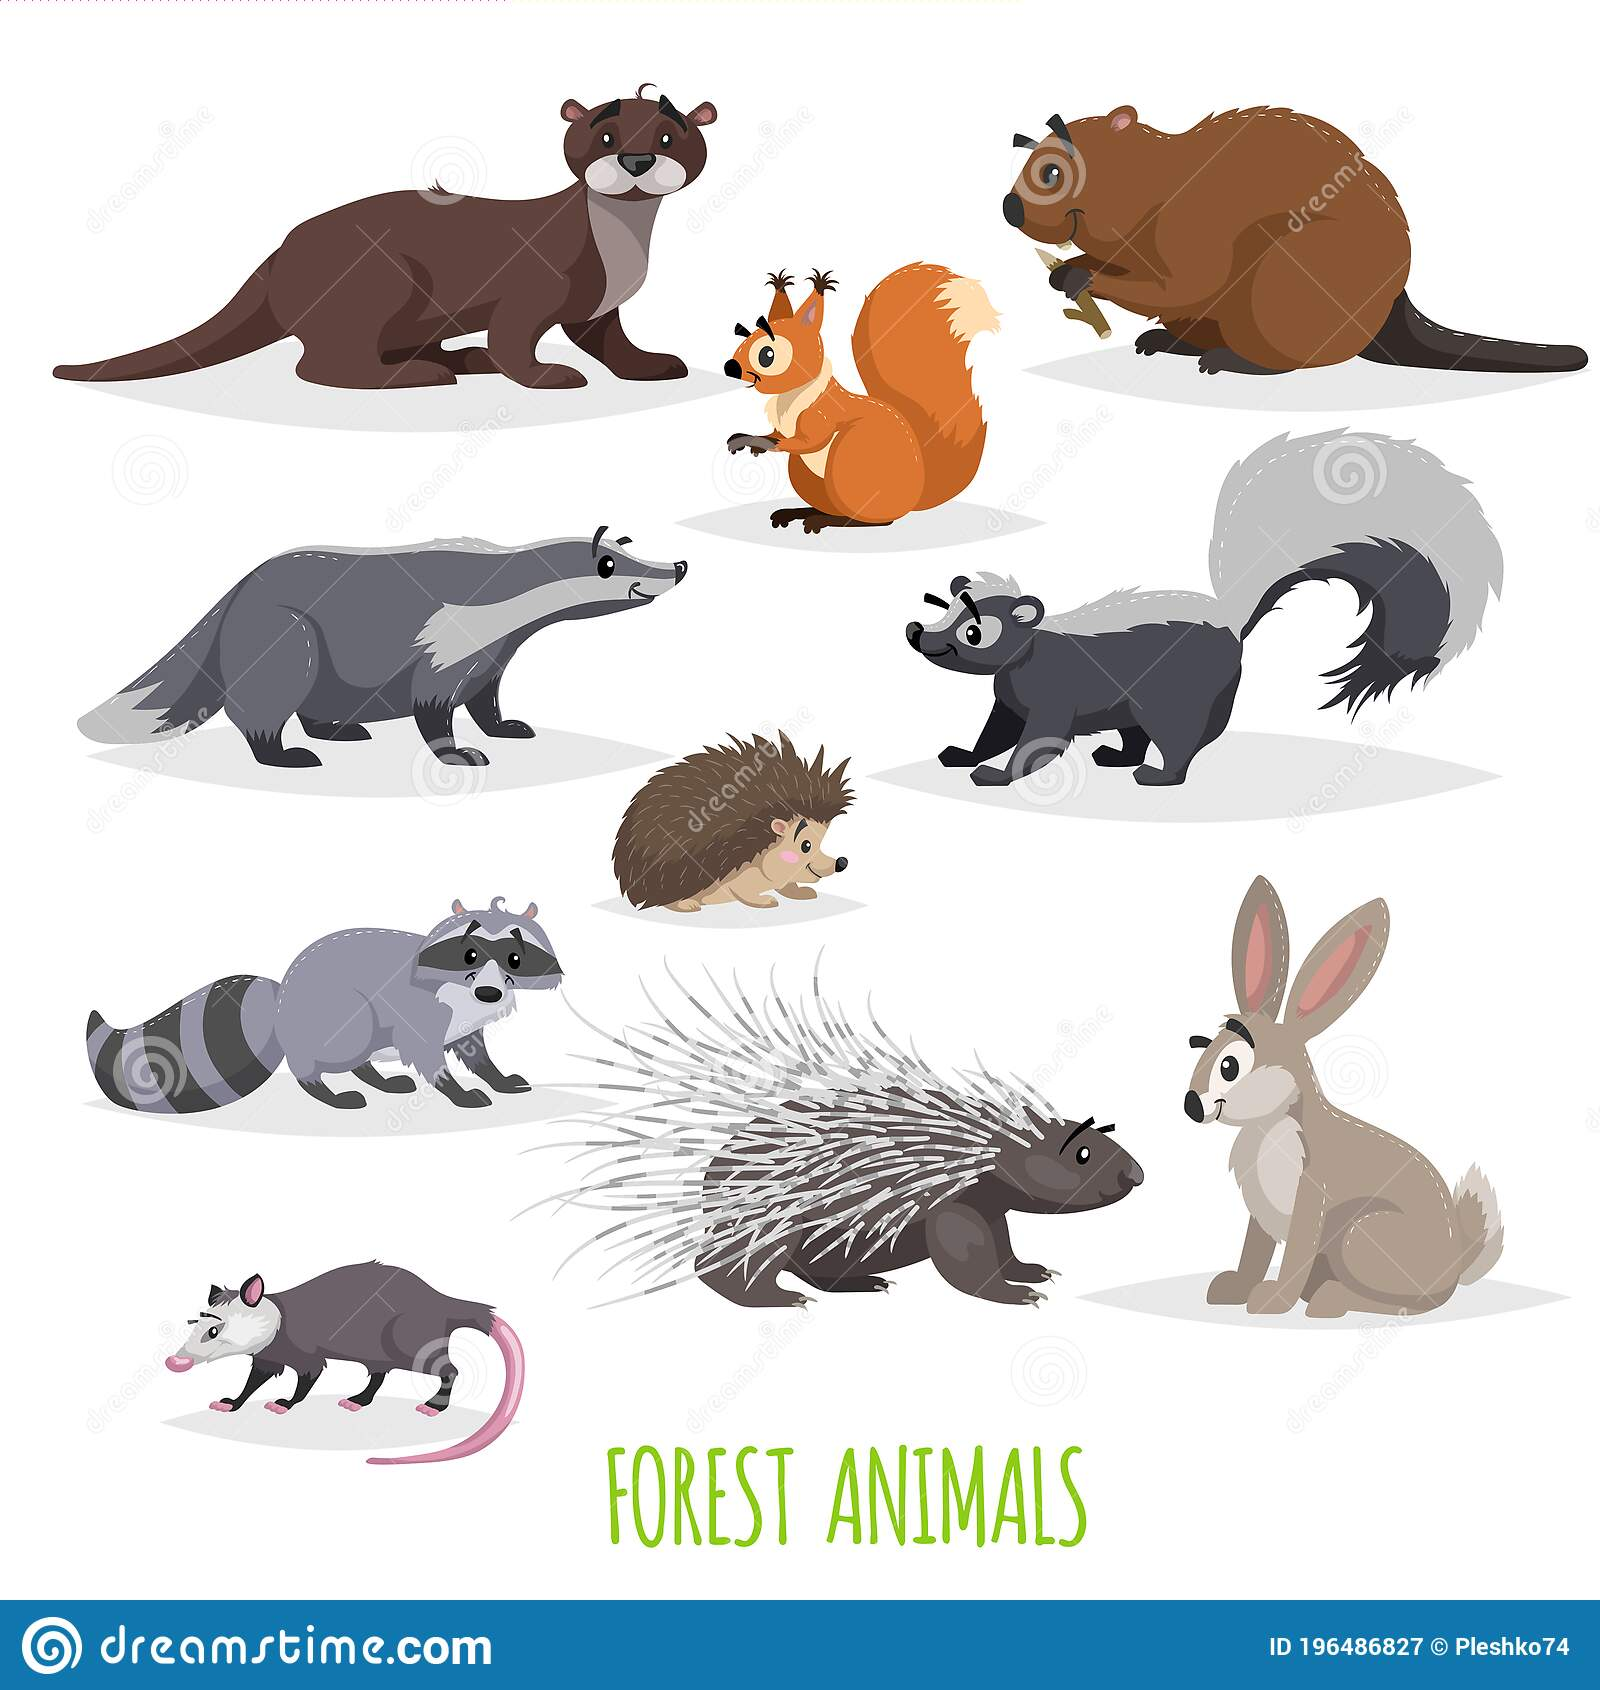 Colorado i some of the animals that live in colorado are pronghorn, elk, mule deer, mountain li. Set Of Woodland And Forest Little Animals Europe And North America Fauna Collection Raccoon Hedgehog Hare Squirrel Badger Stock Vector Illustration Of America Animals 196486827